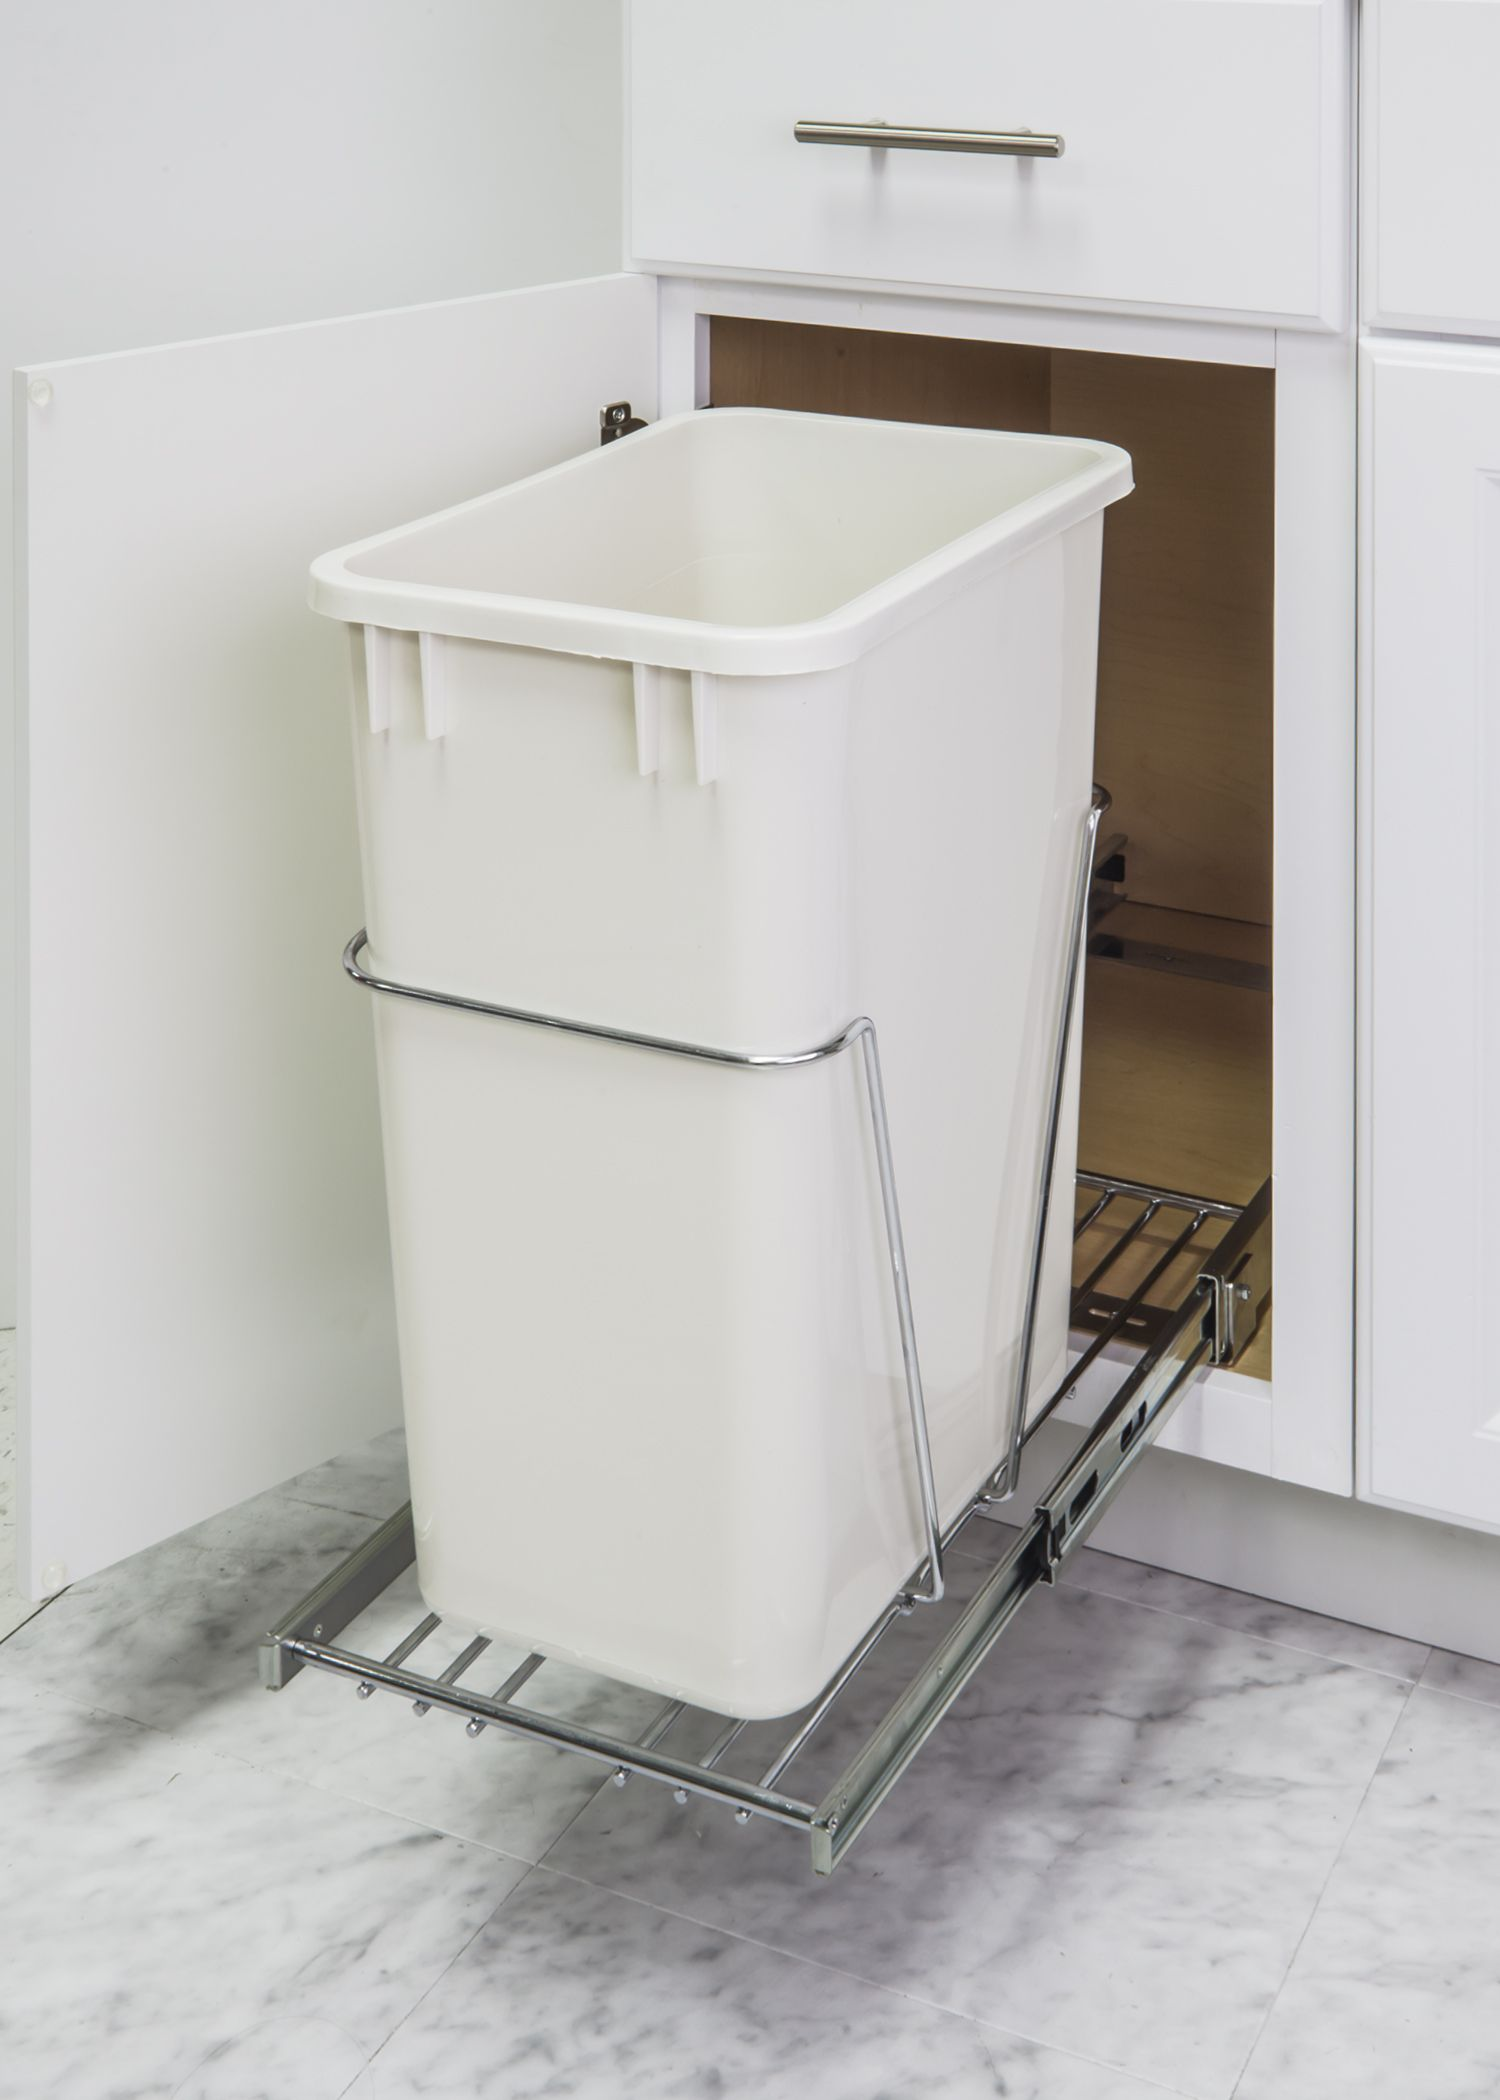 Organize Your Kitchen In 11 Minutes Or Less Easy Install Pullout Trash Can.  Cans Sold Separately. Installs With 4 Screws. Photos By Hardware Resources